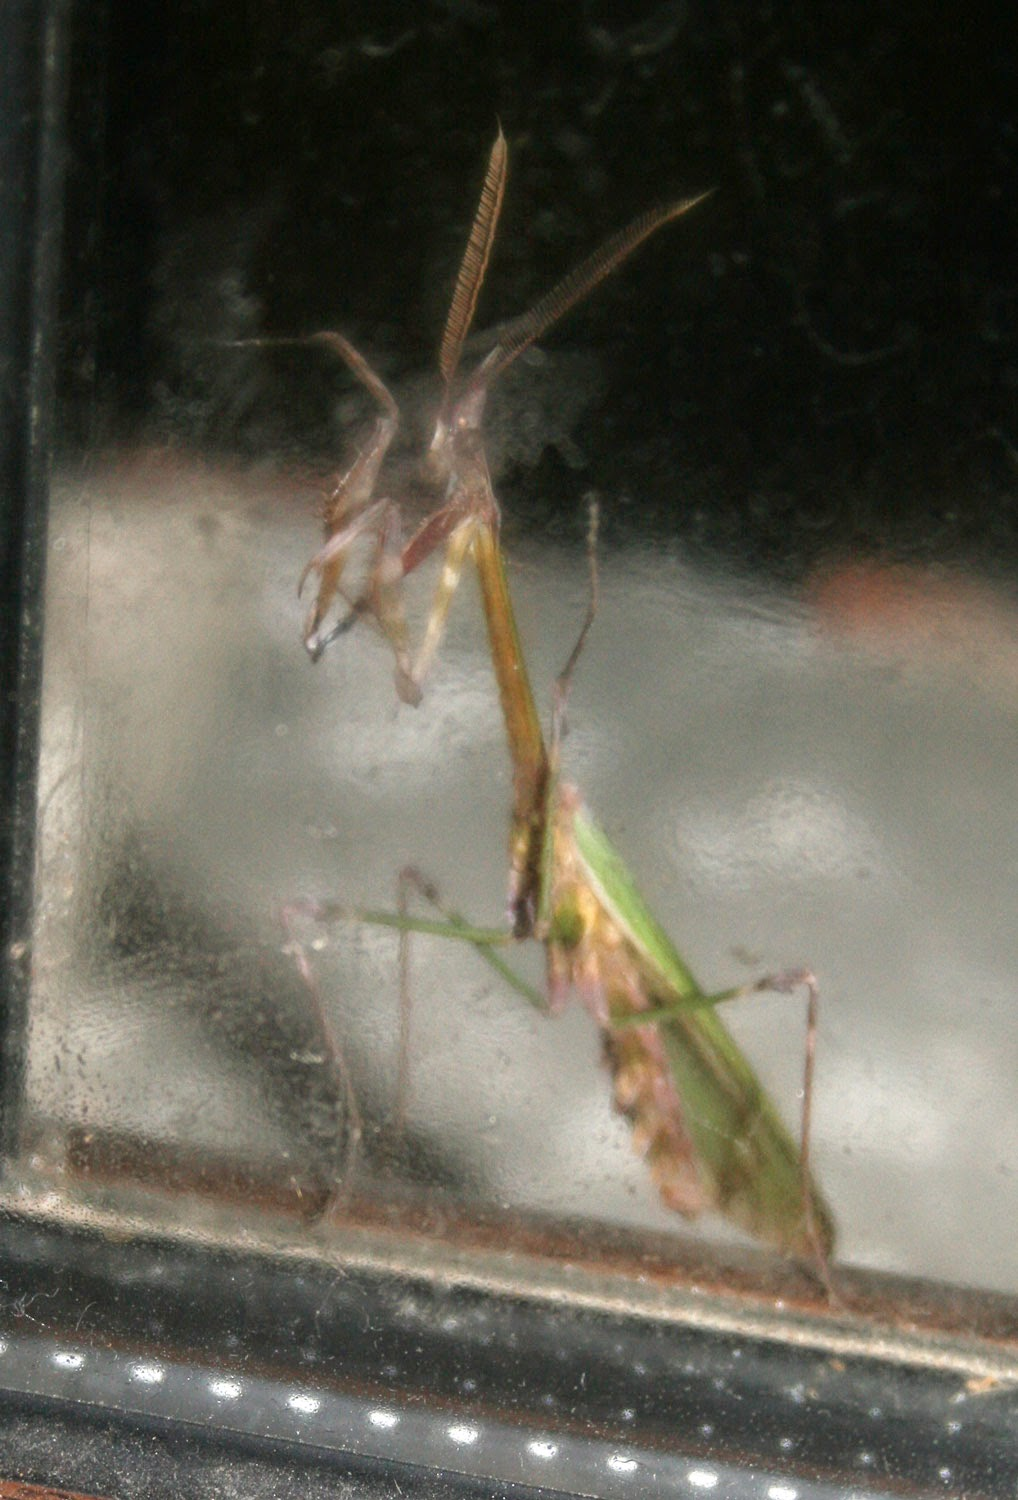 Female Preying Mantis at the window